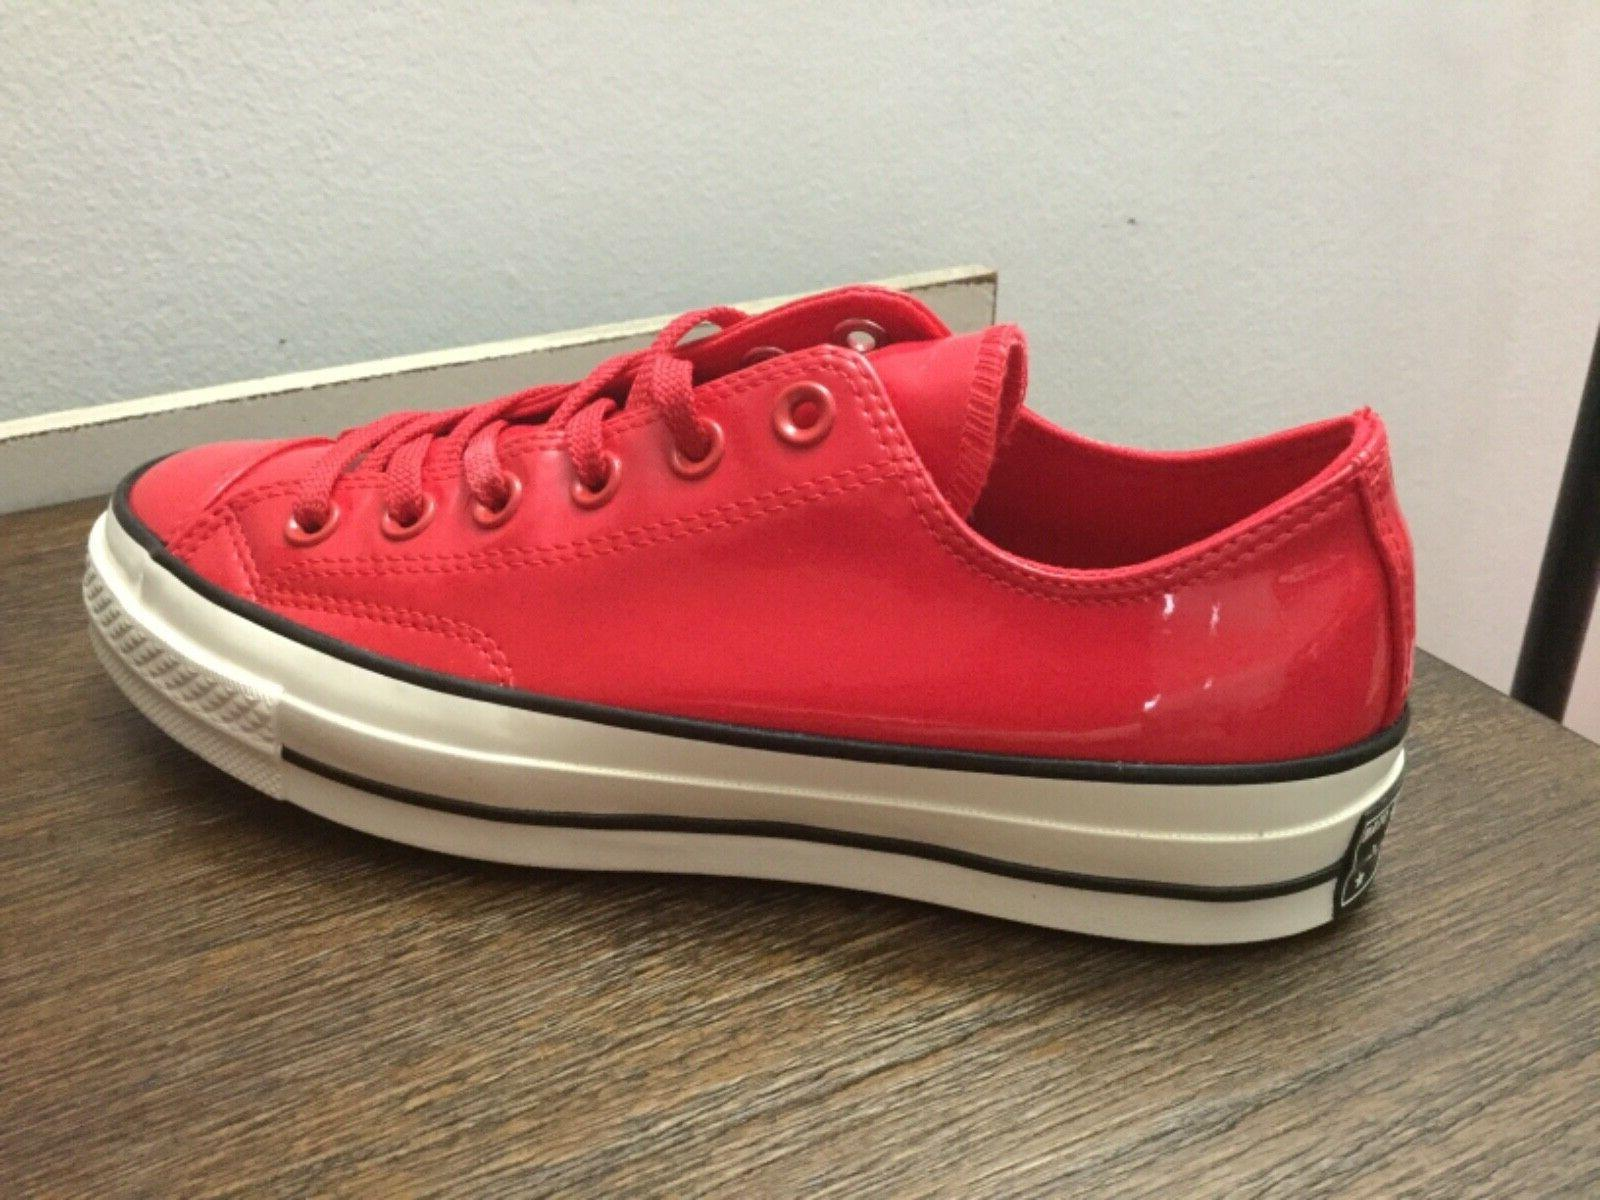 Converse Star OX Leather Cherry Red 6-8.5